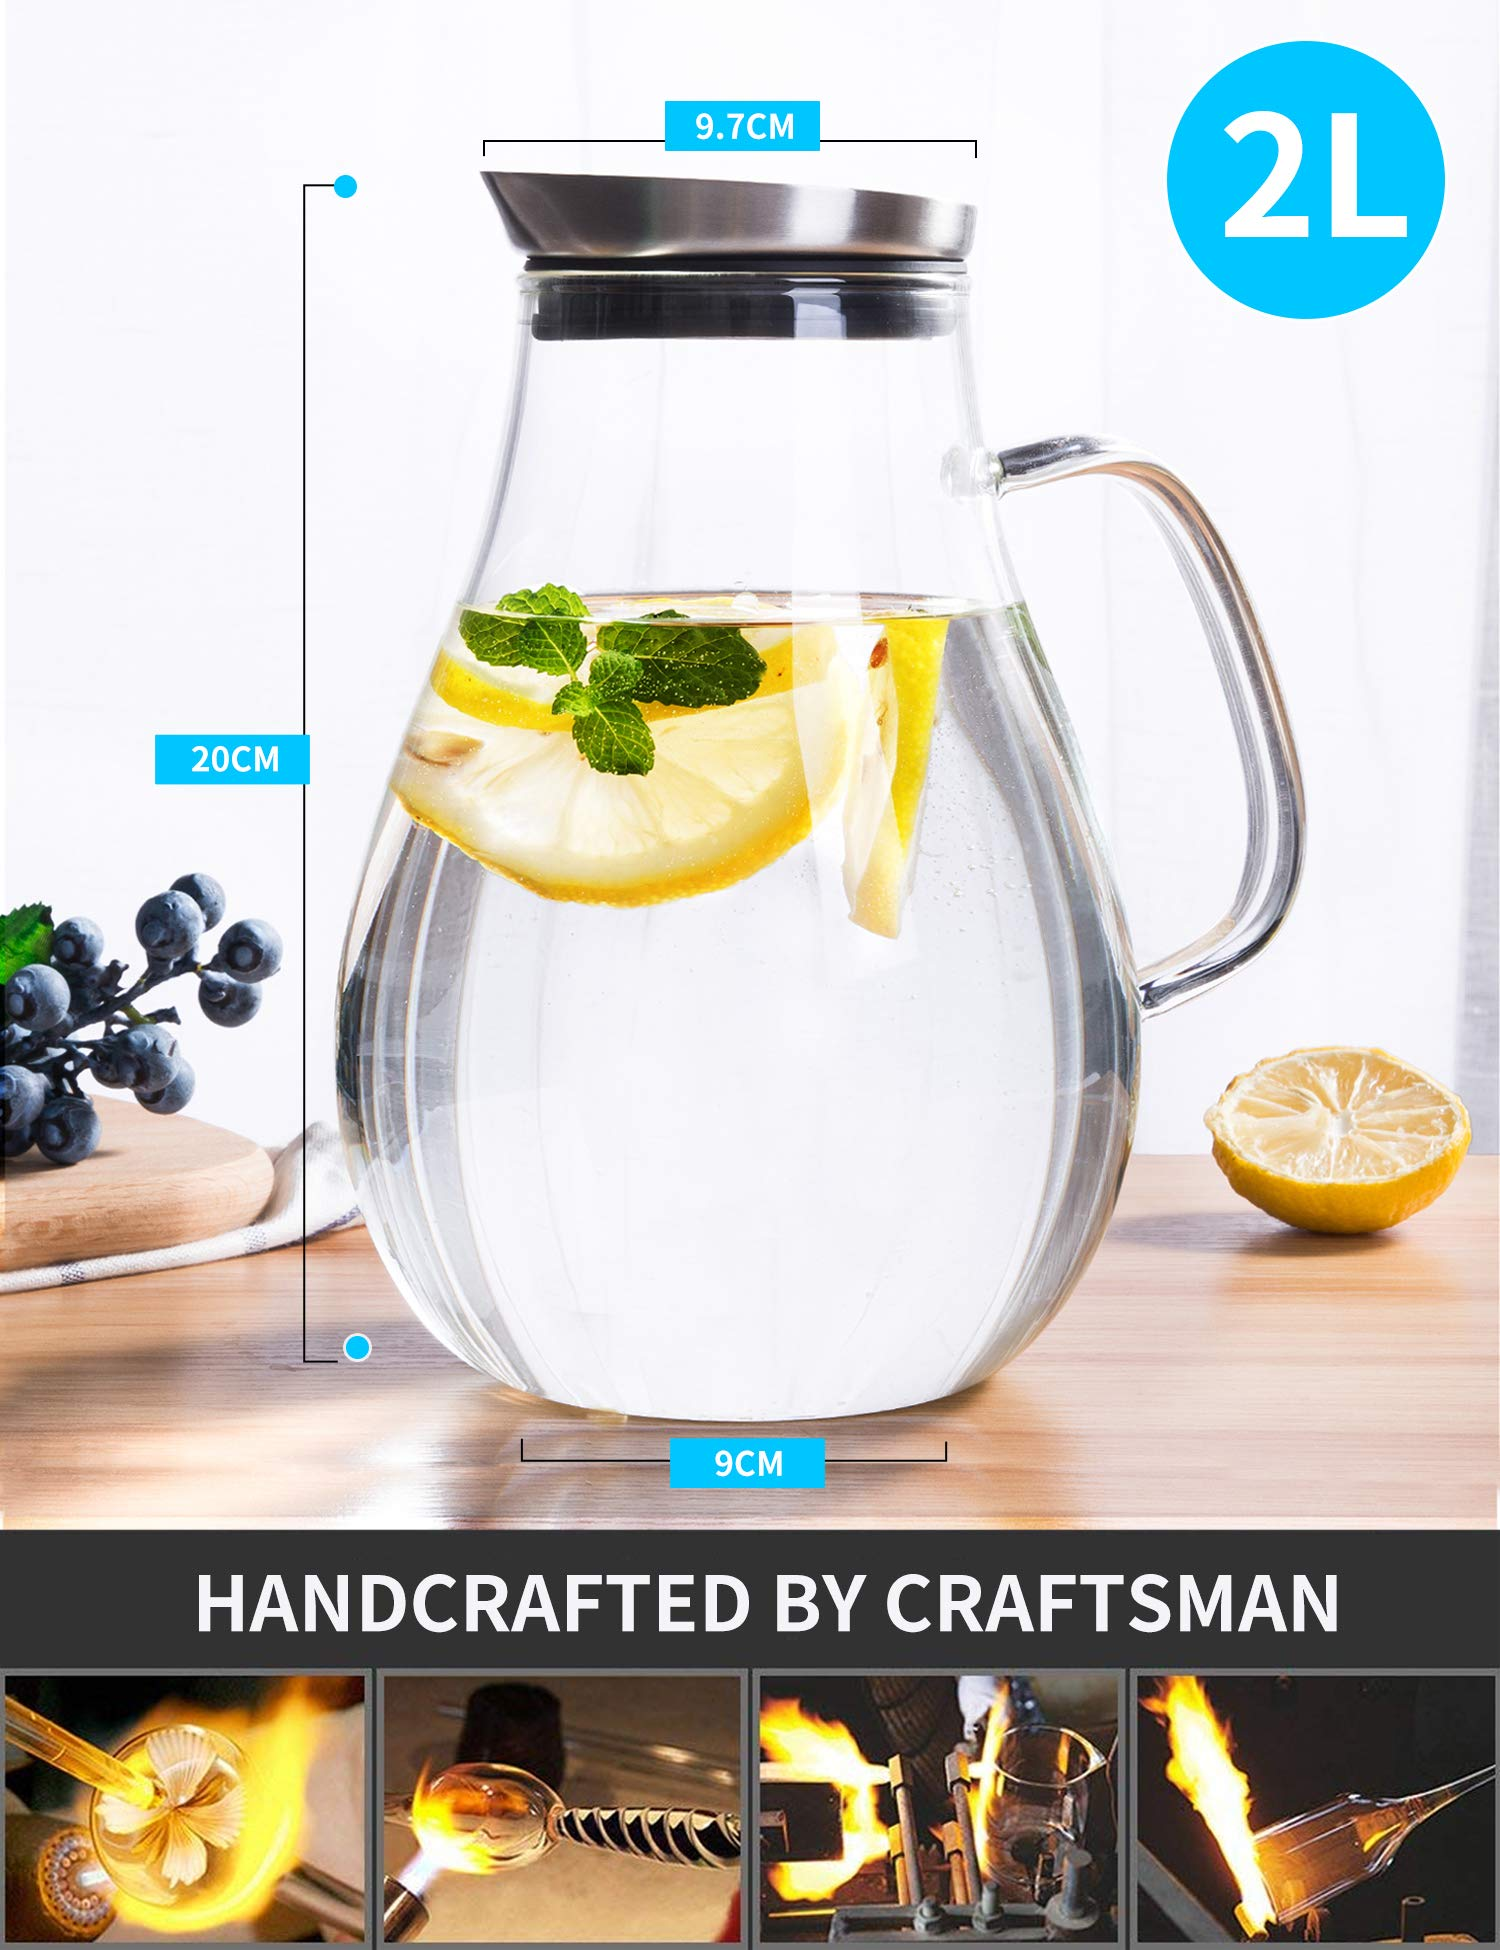 2.0 Liter Glass Pitcher with Lid, Water Carafe Jug for Hot/Cold Water, Ice Tea and Juice Beverage by susteas (Image #5)